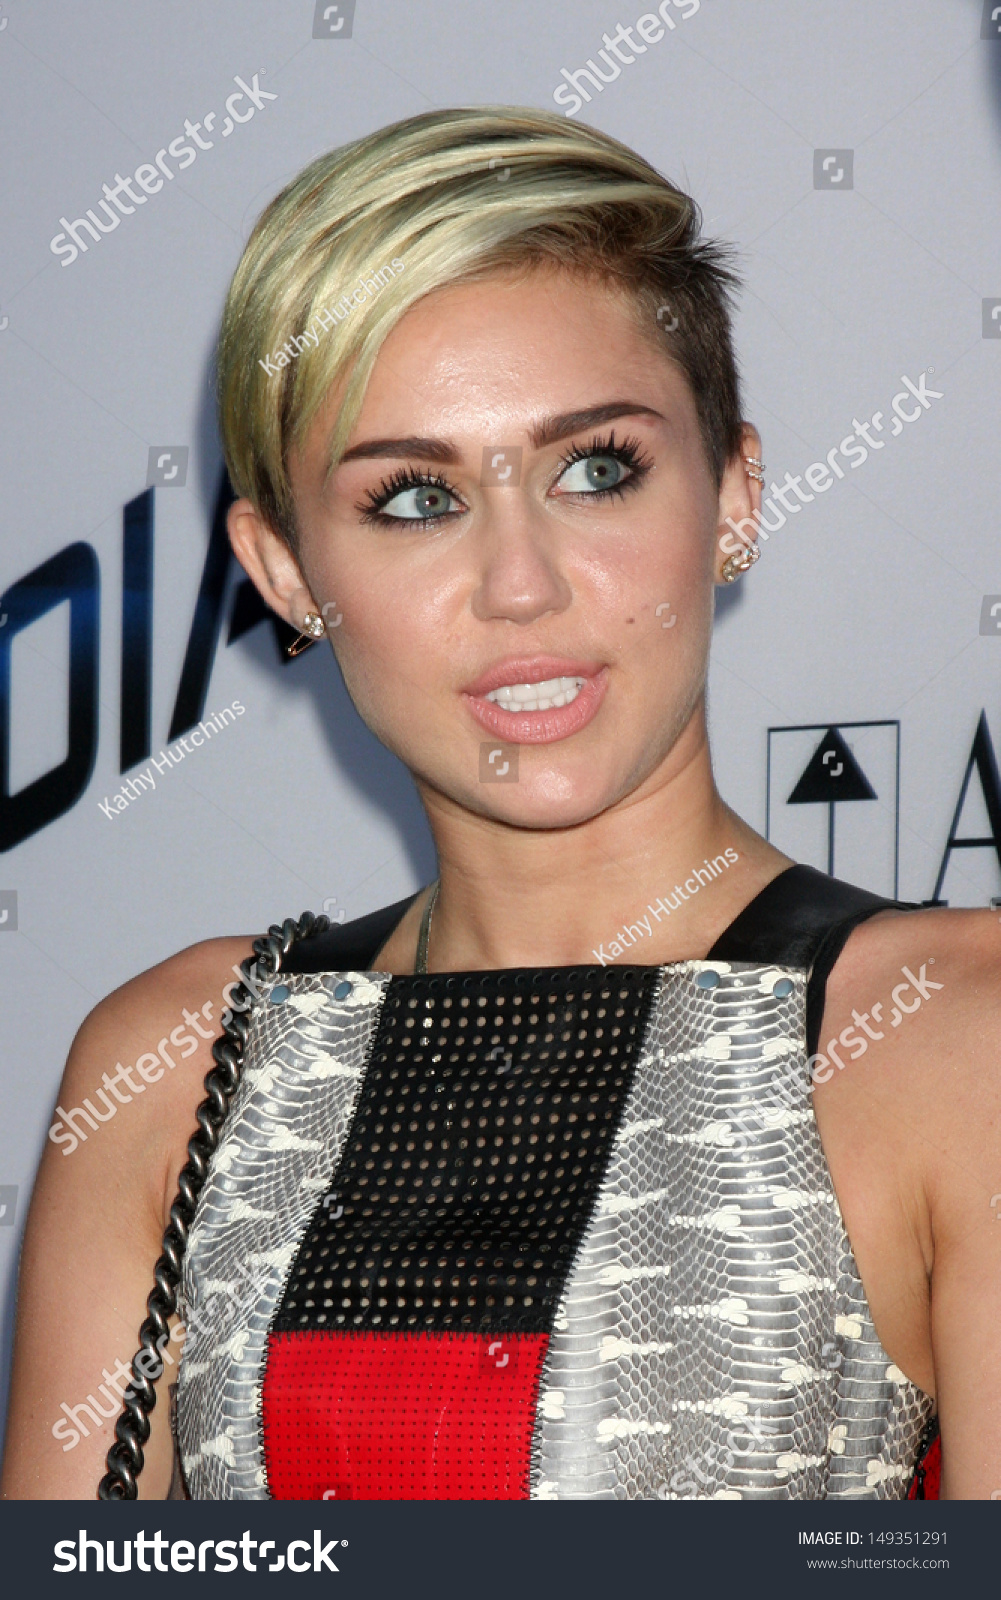 images 8. Miley Cyrus